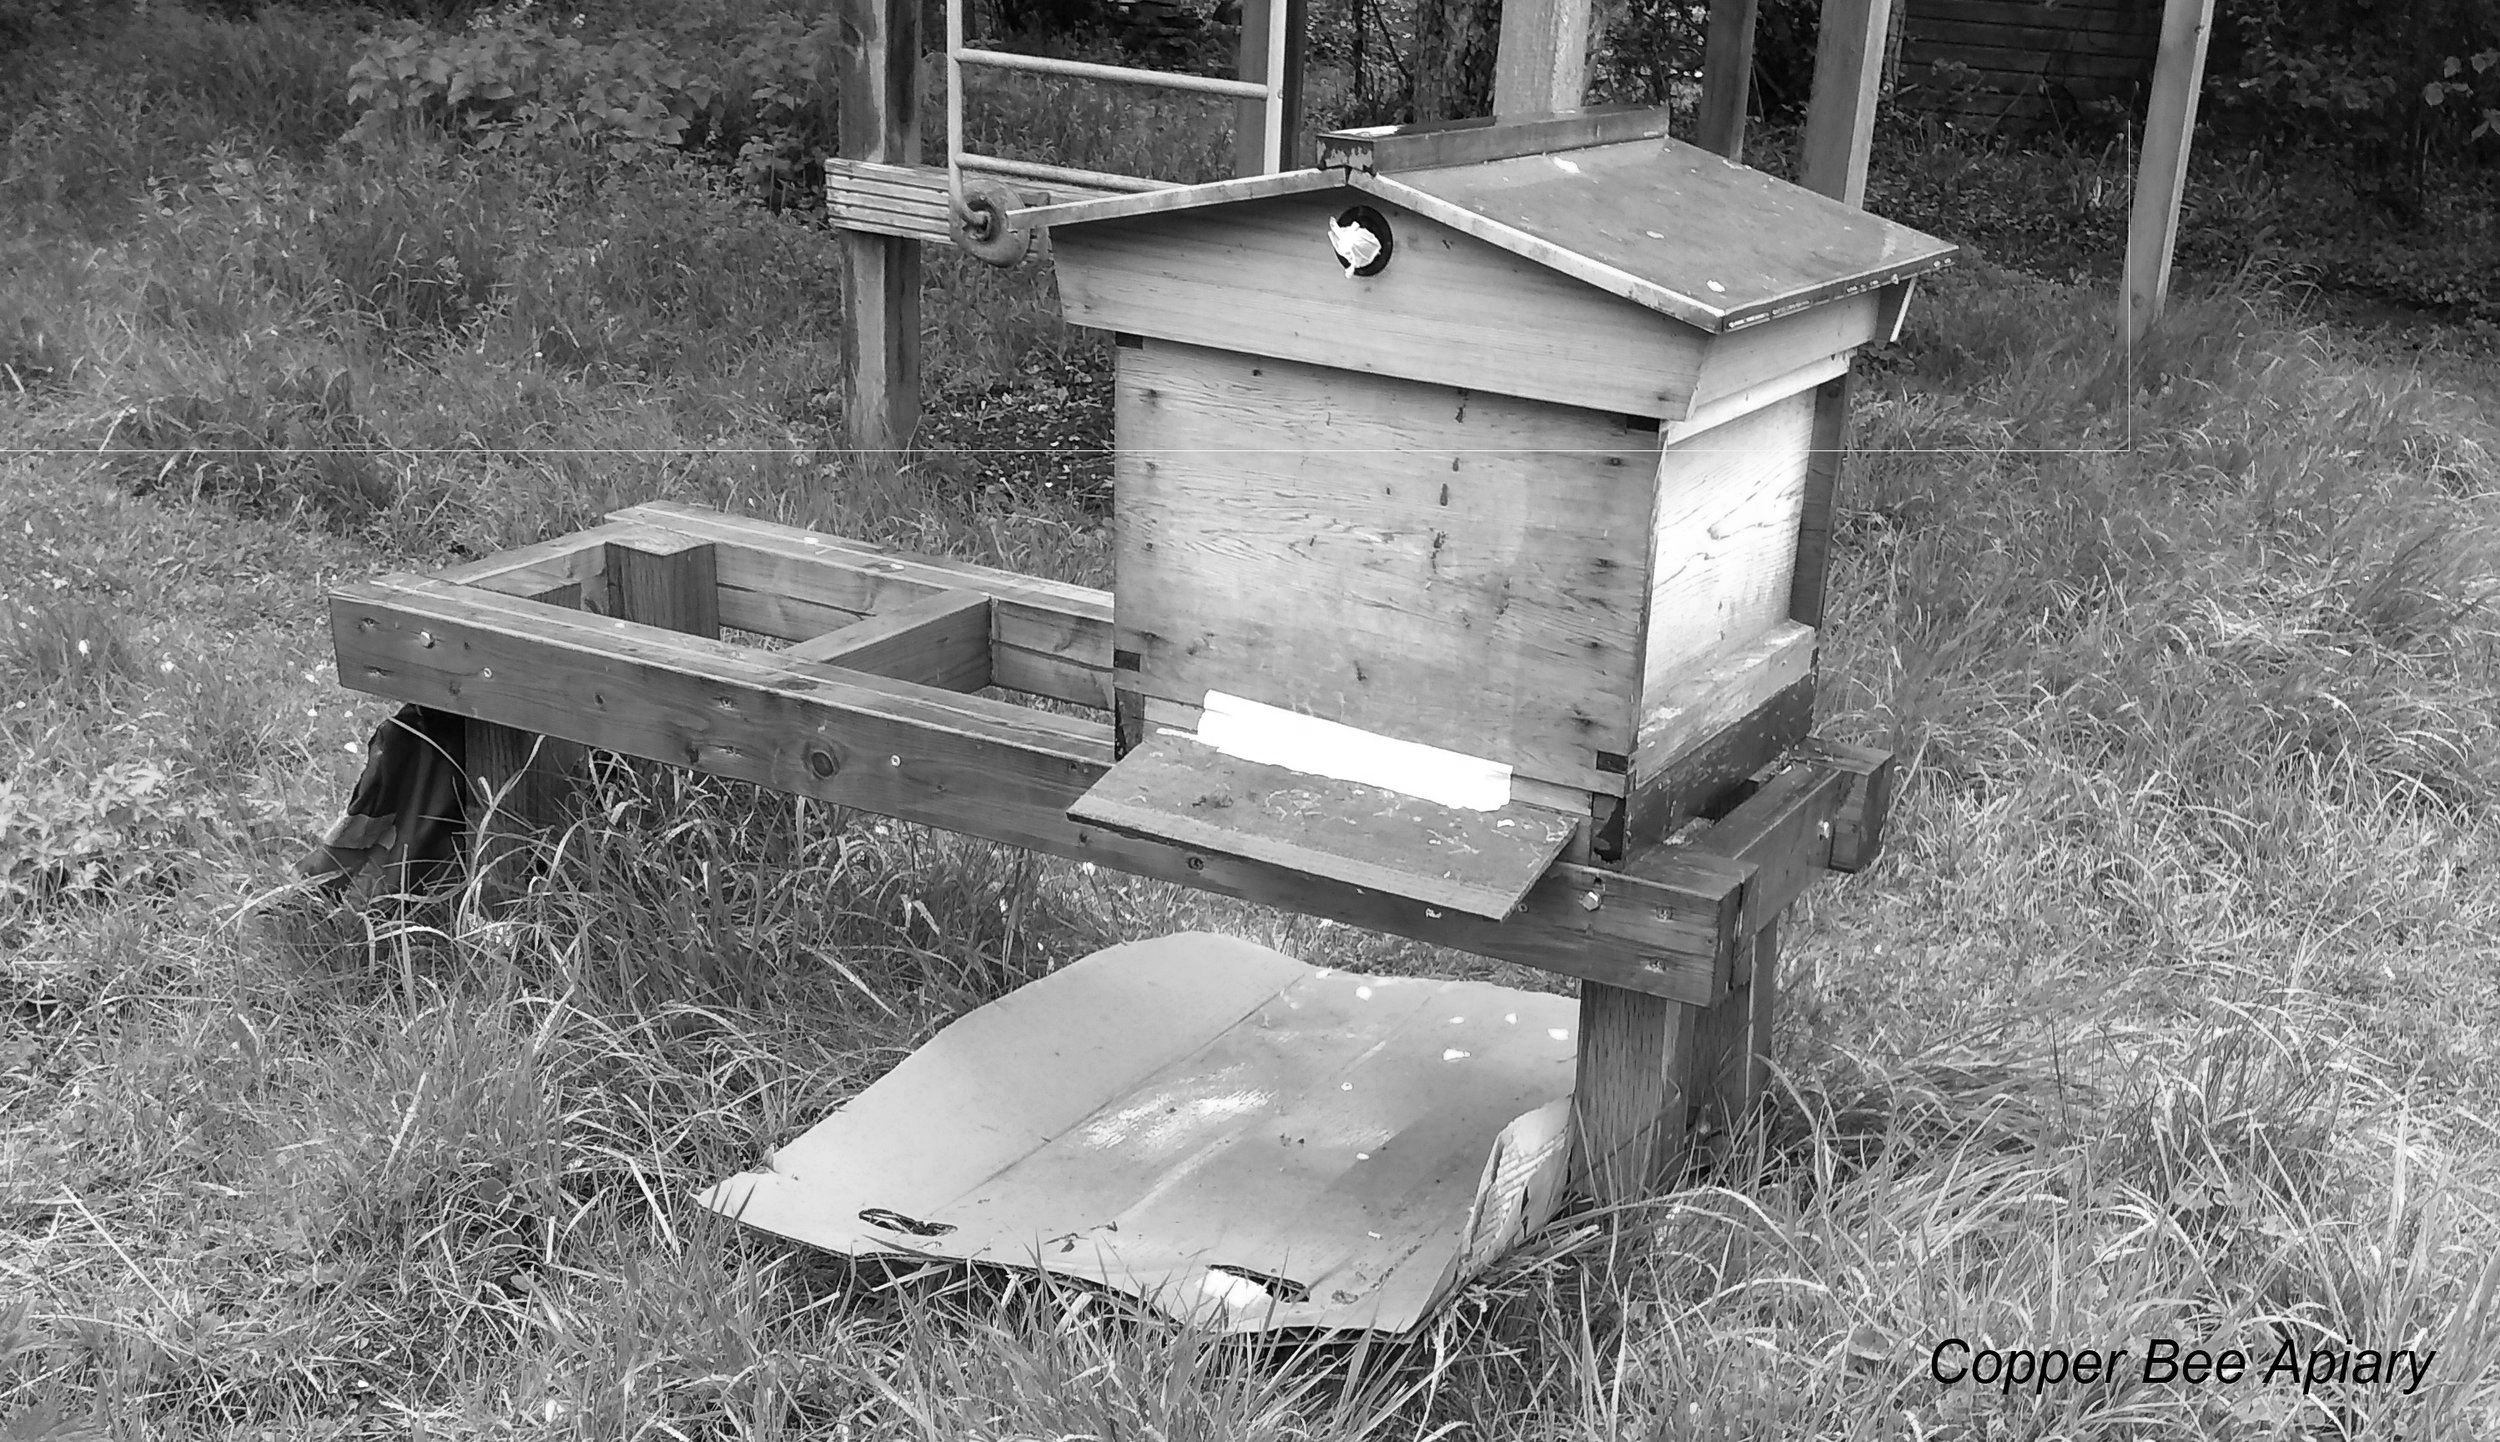 8 May 2019. The next morning. A quiet hive in the rain.